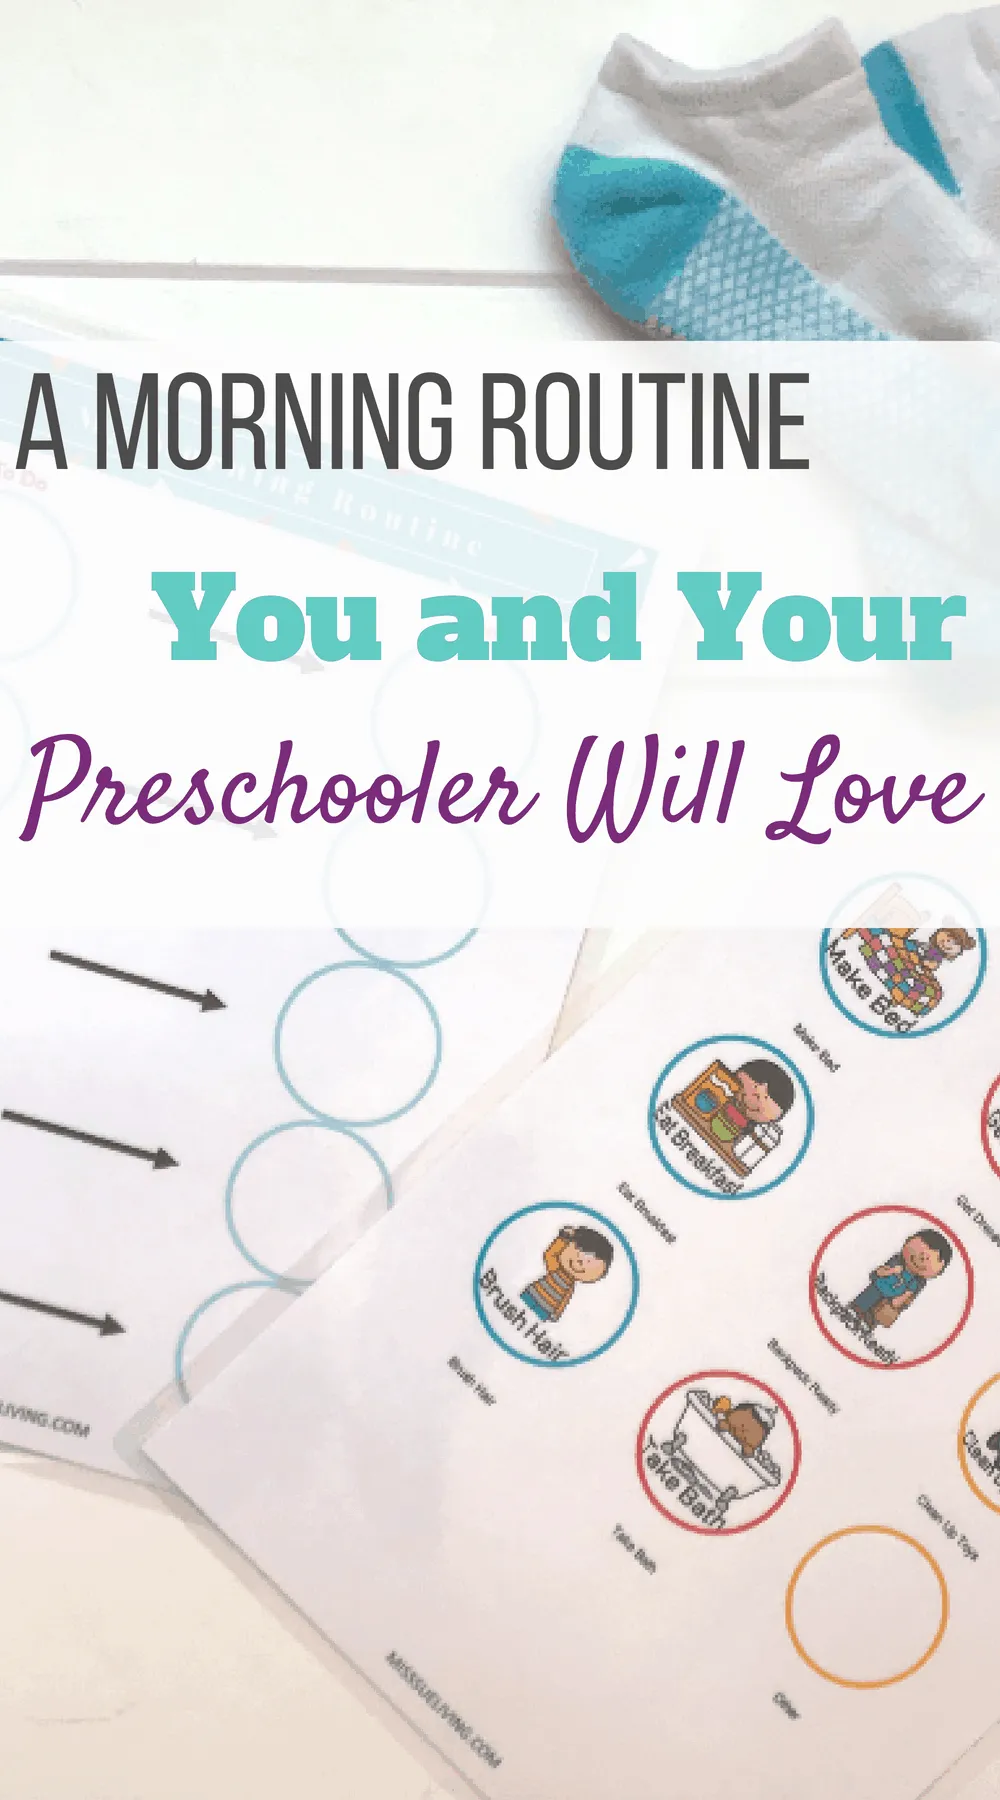 A Morning Routine You and Your Preschooler Can Love #morningroutine